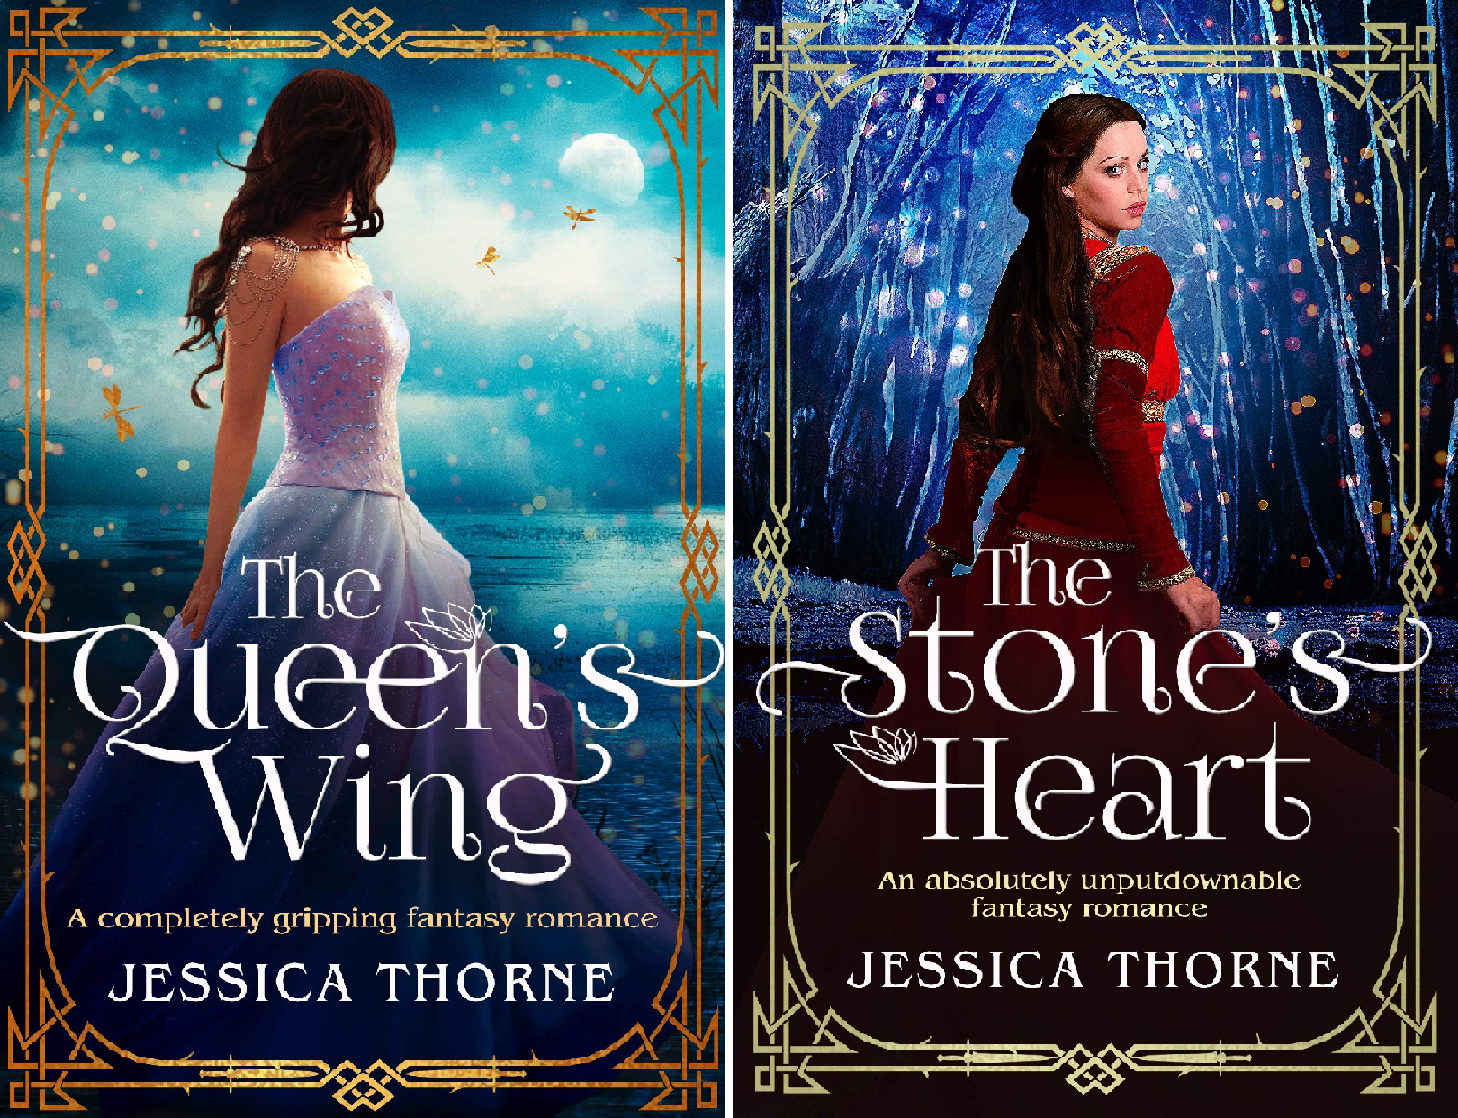 The Queen's Wing Series (2 Book Series)